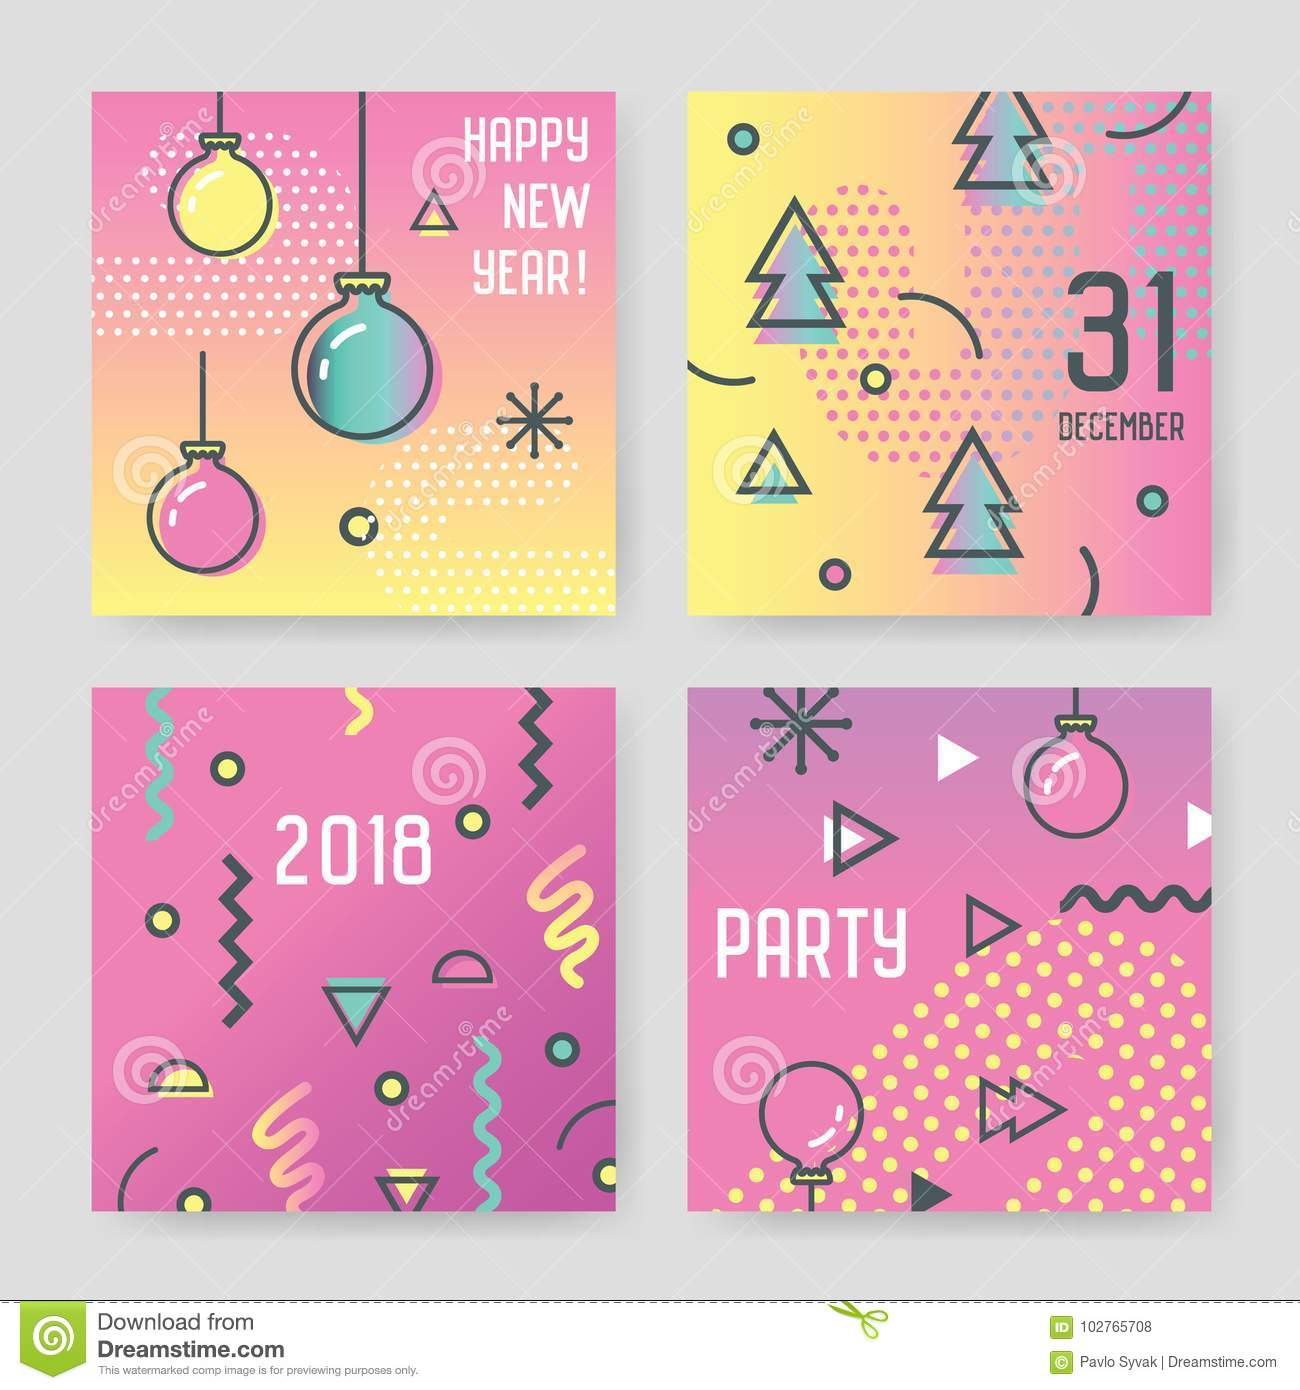 Happy New Year 2018 Greeting Cards In Trendy Abstract Memphis Style